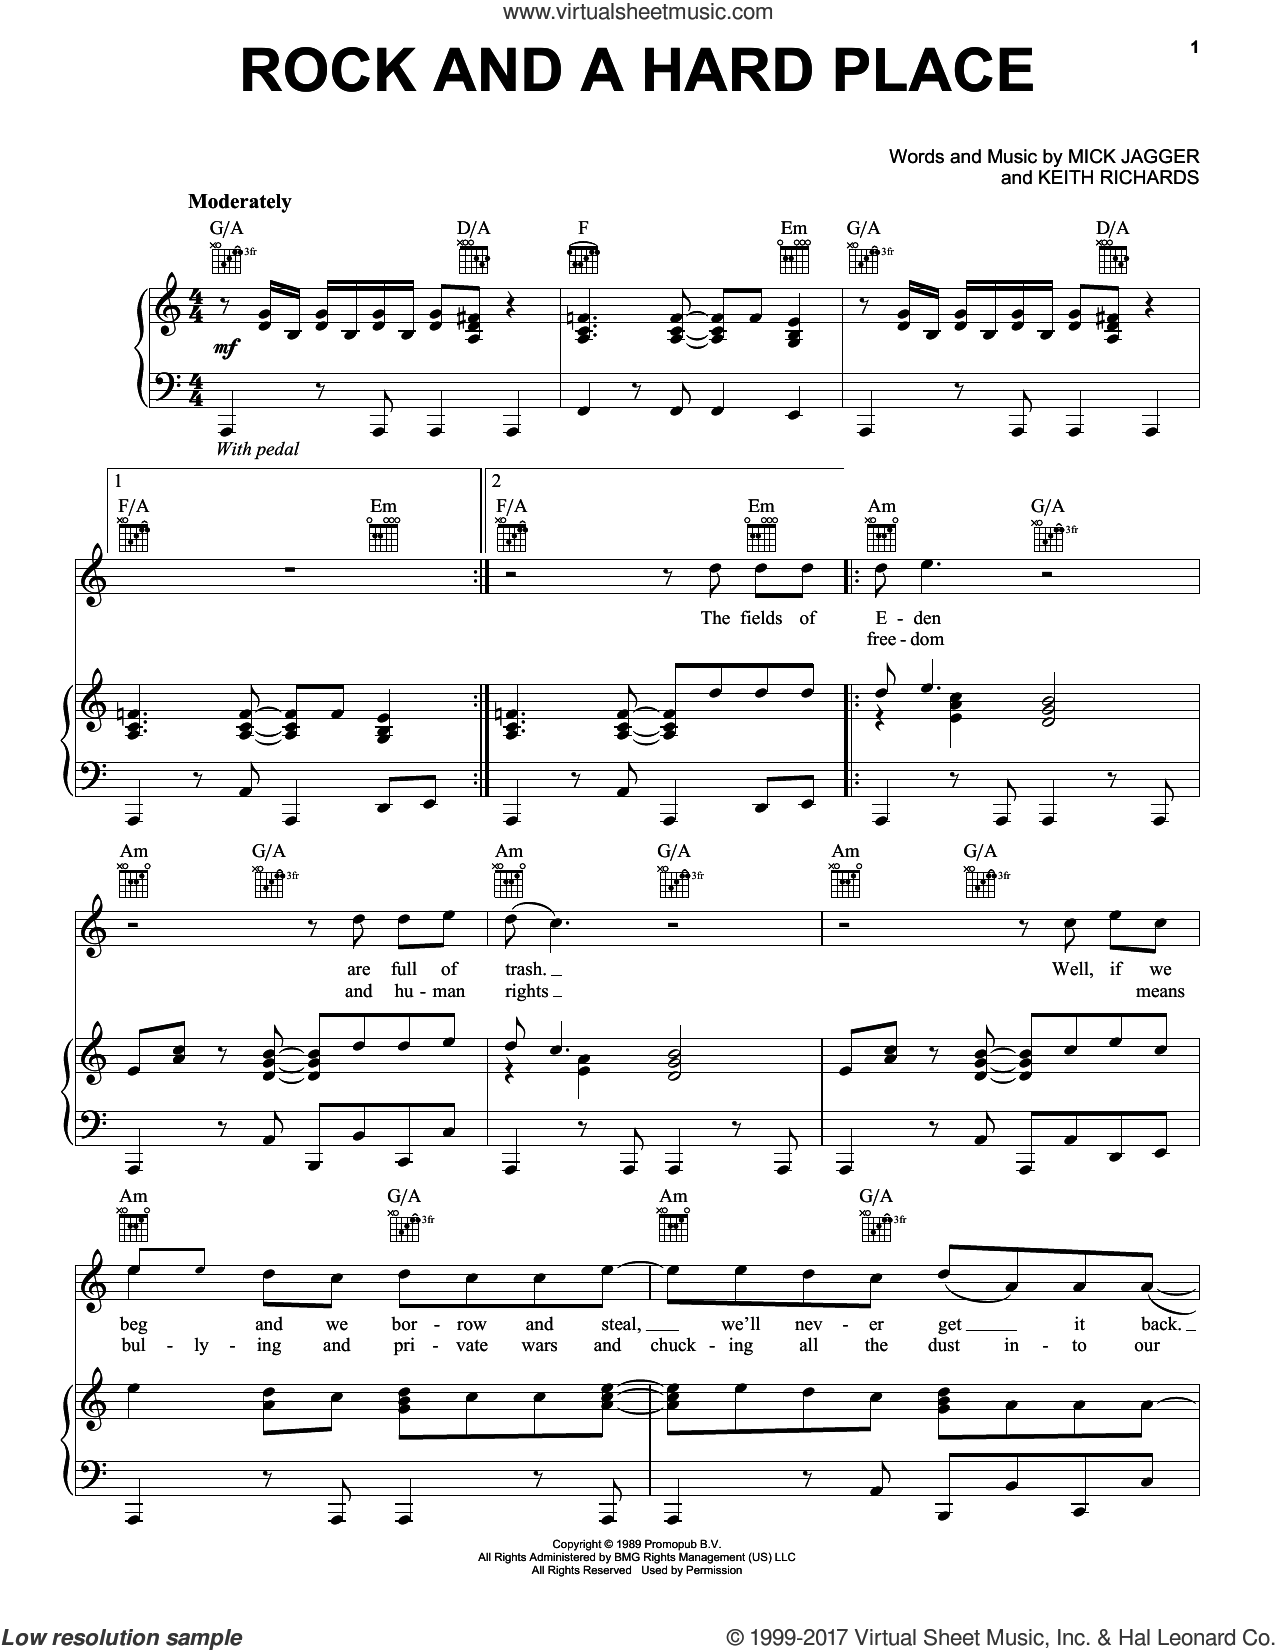 Rock And A Hard Place sheet music for voice, piano or guitar by The Rolling Stones, Keith Richards and Mick Jagger, intermediate skill level